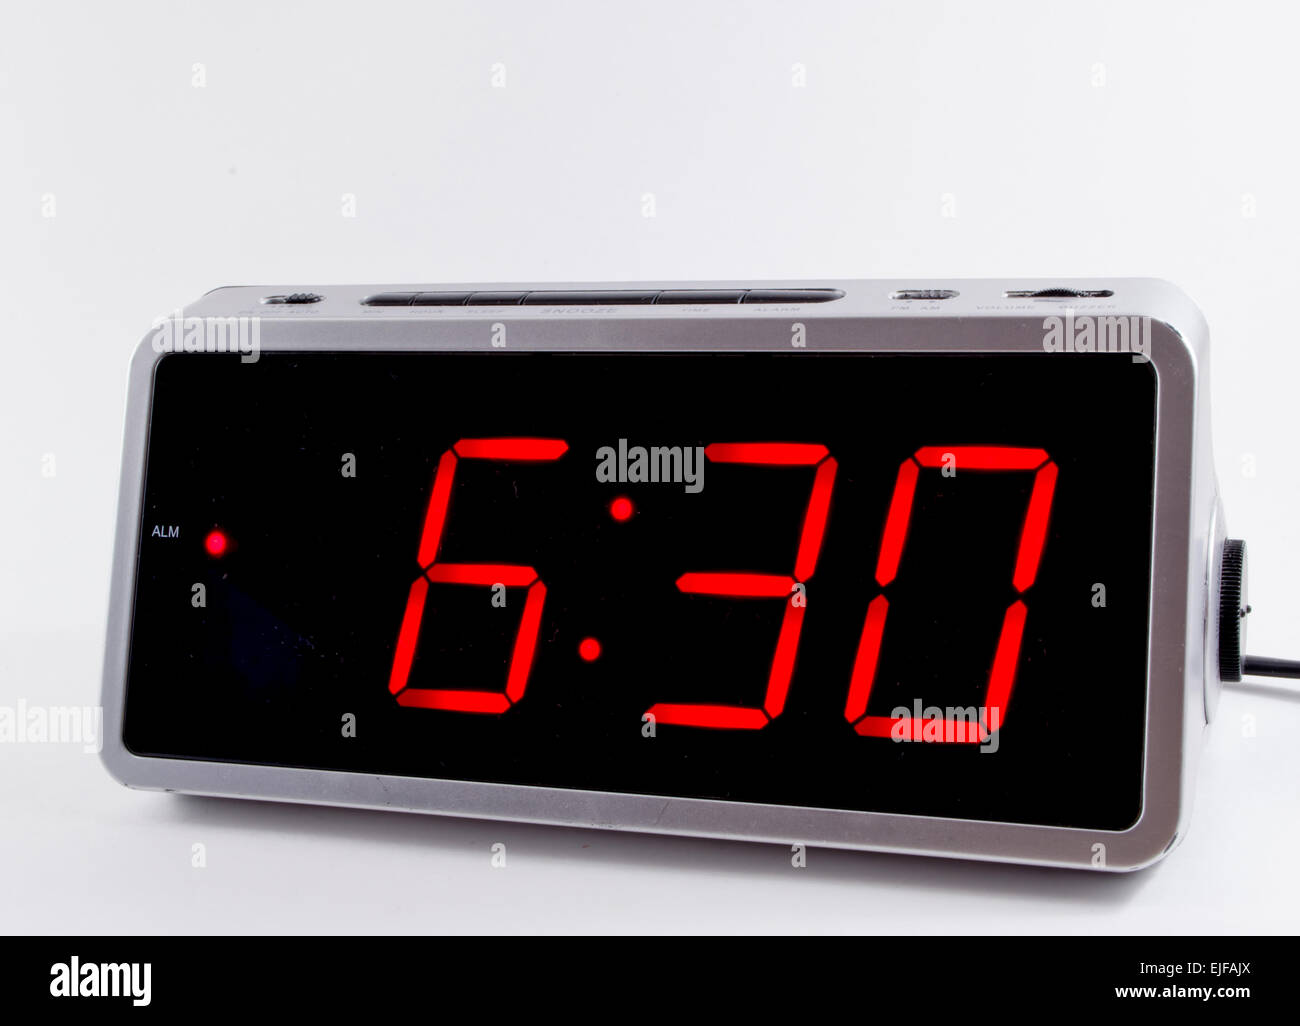 alarm clock 6 stockfotos alarm clock 6 bilder alamy. Black Bedroom Furniture Sets. Home Design Ideas